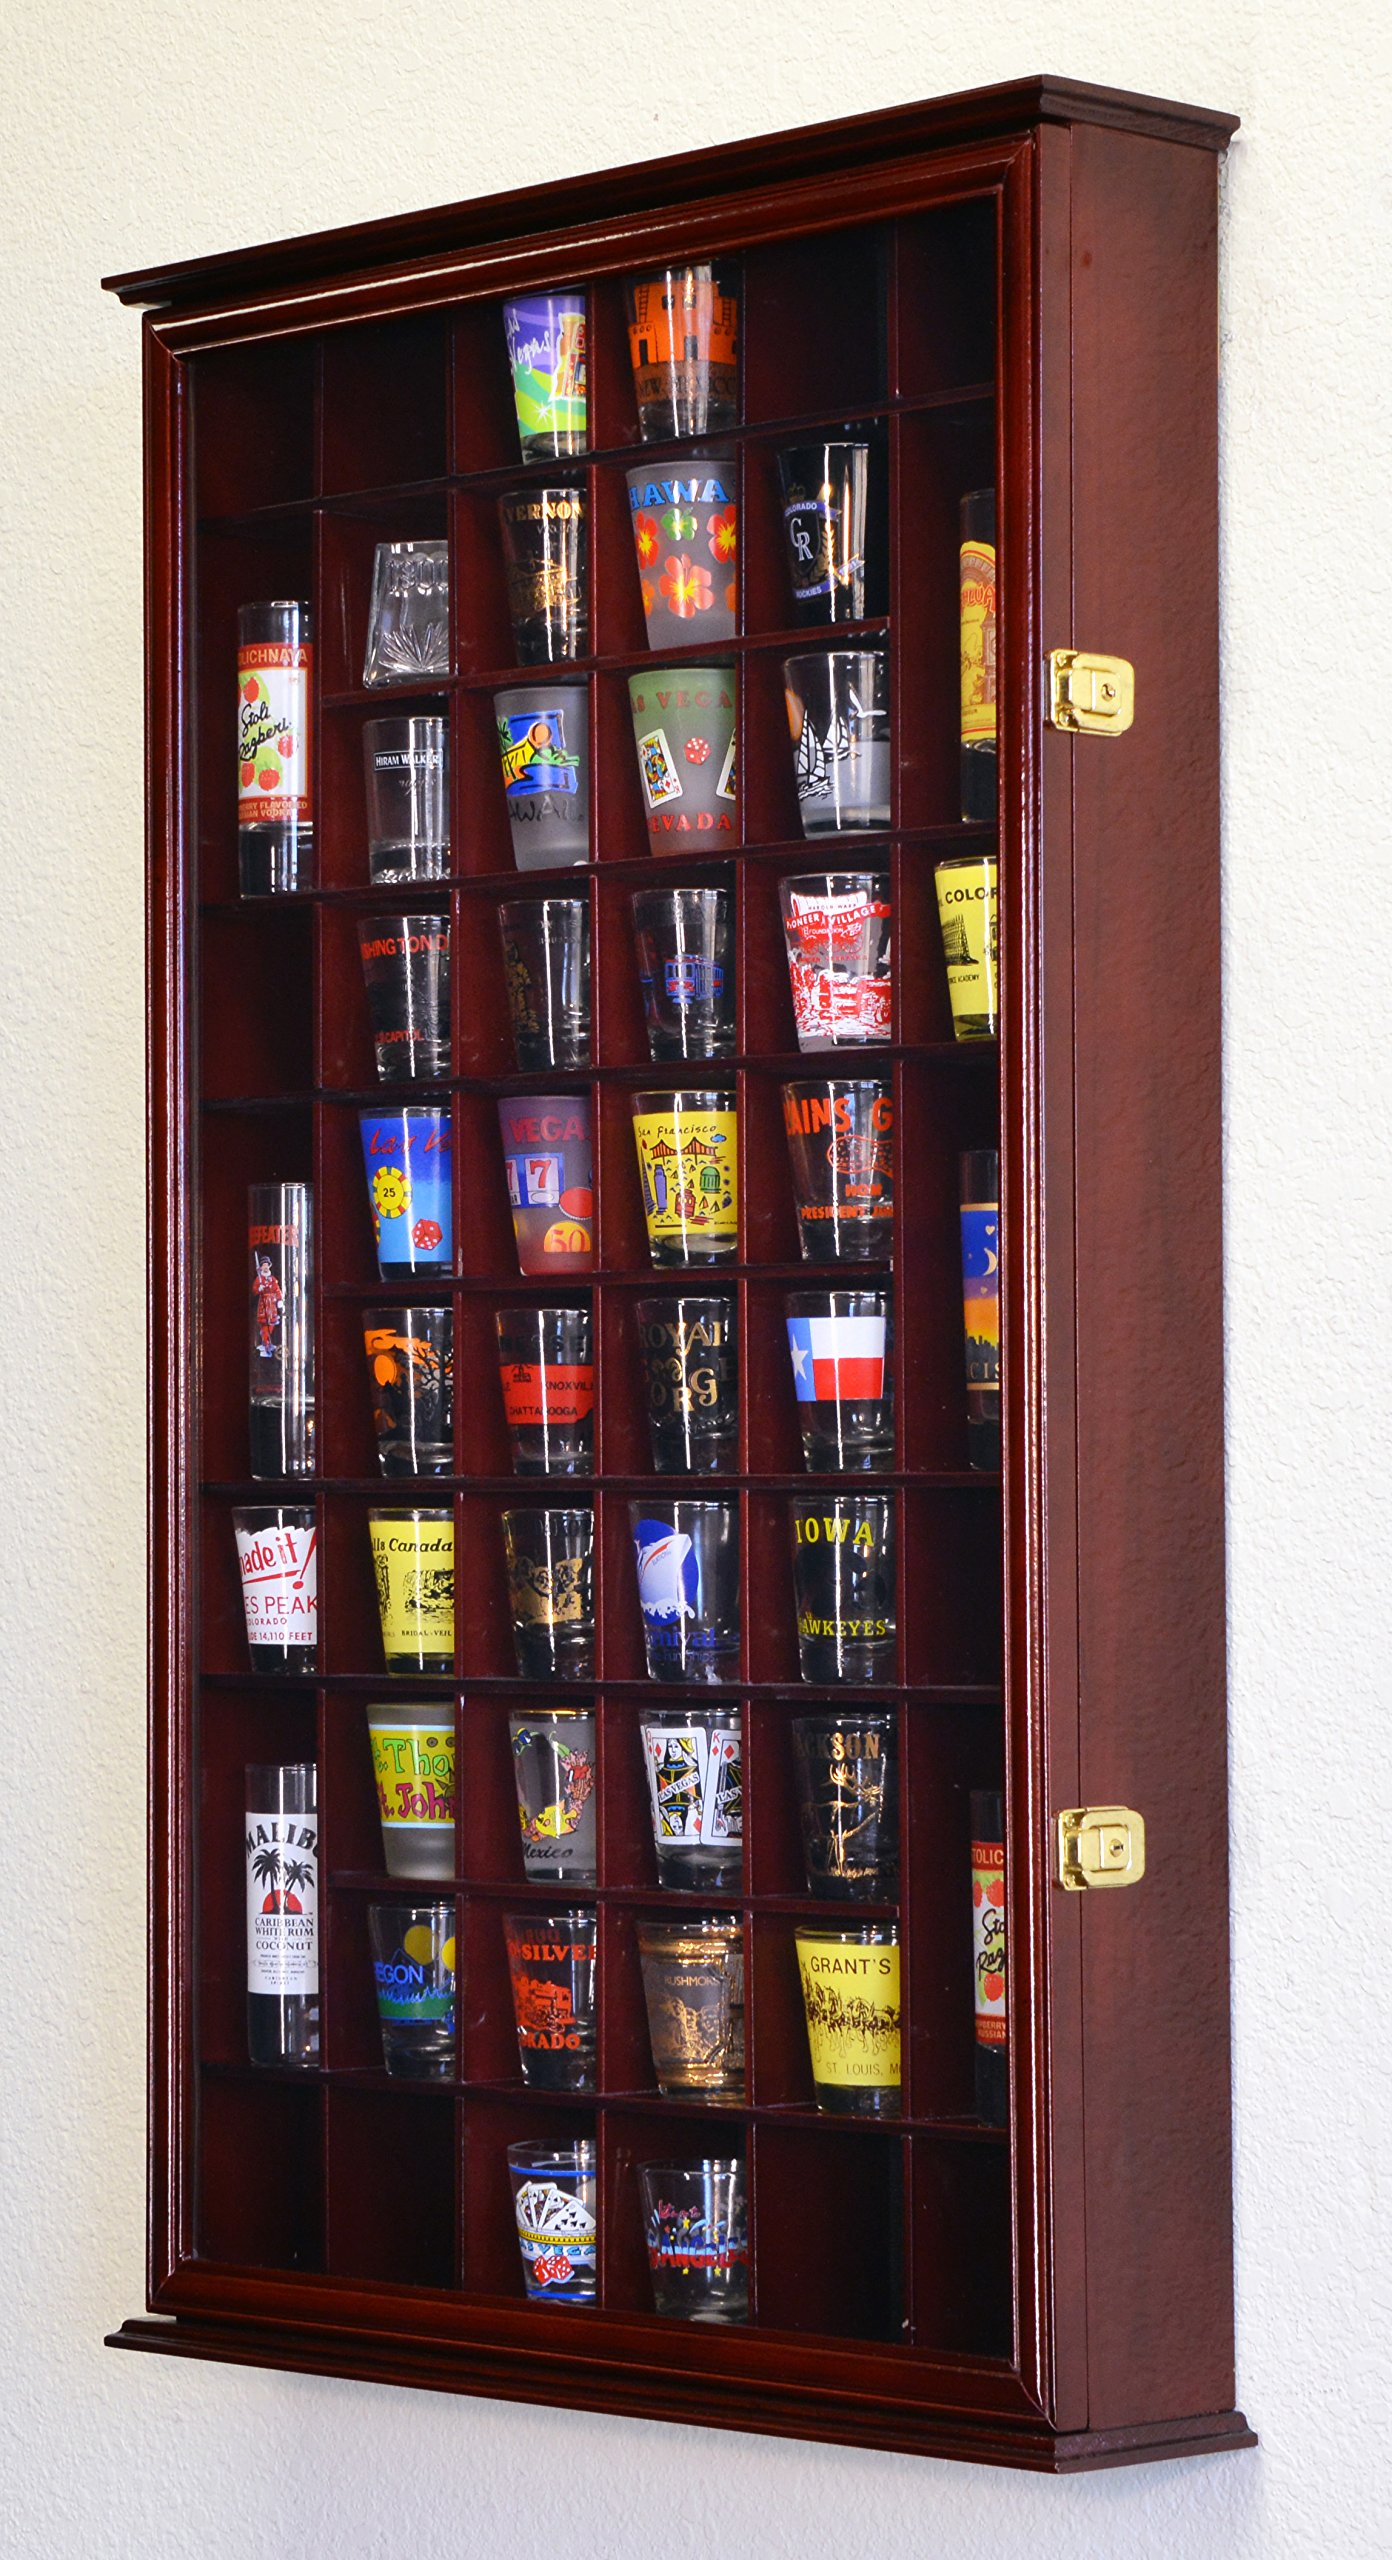 54 Shot Glass Shooter Display Case Holder Cabinet Wall Rack w/ UV Protection -Cherry by sfDisplay.com, Factory Direct Display Cases (Image #3)